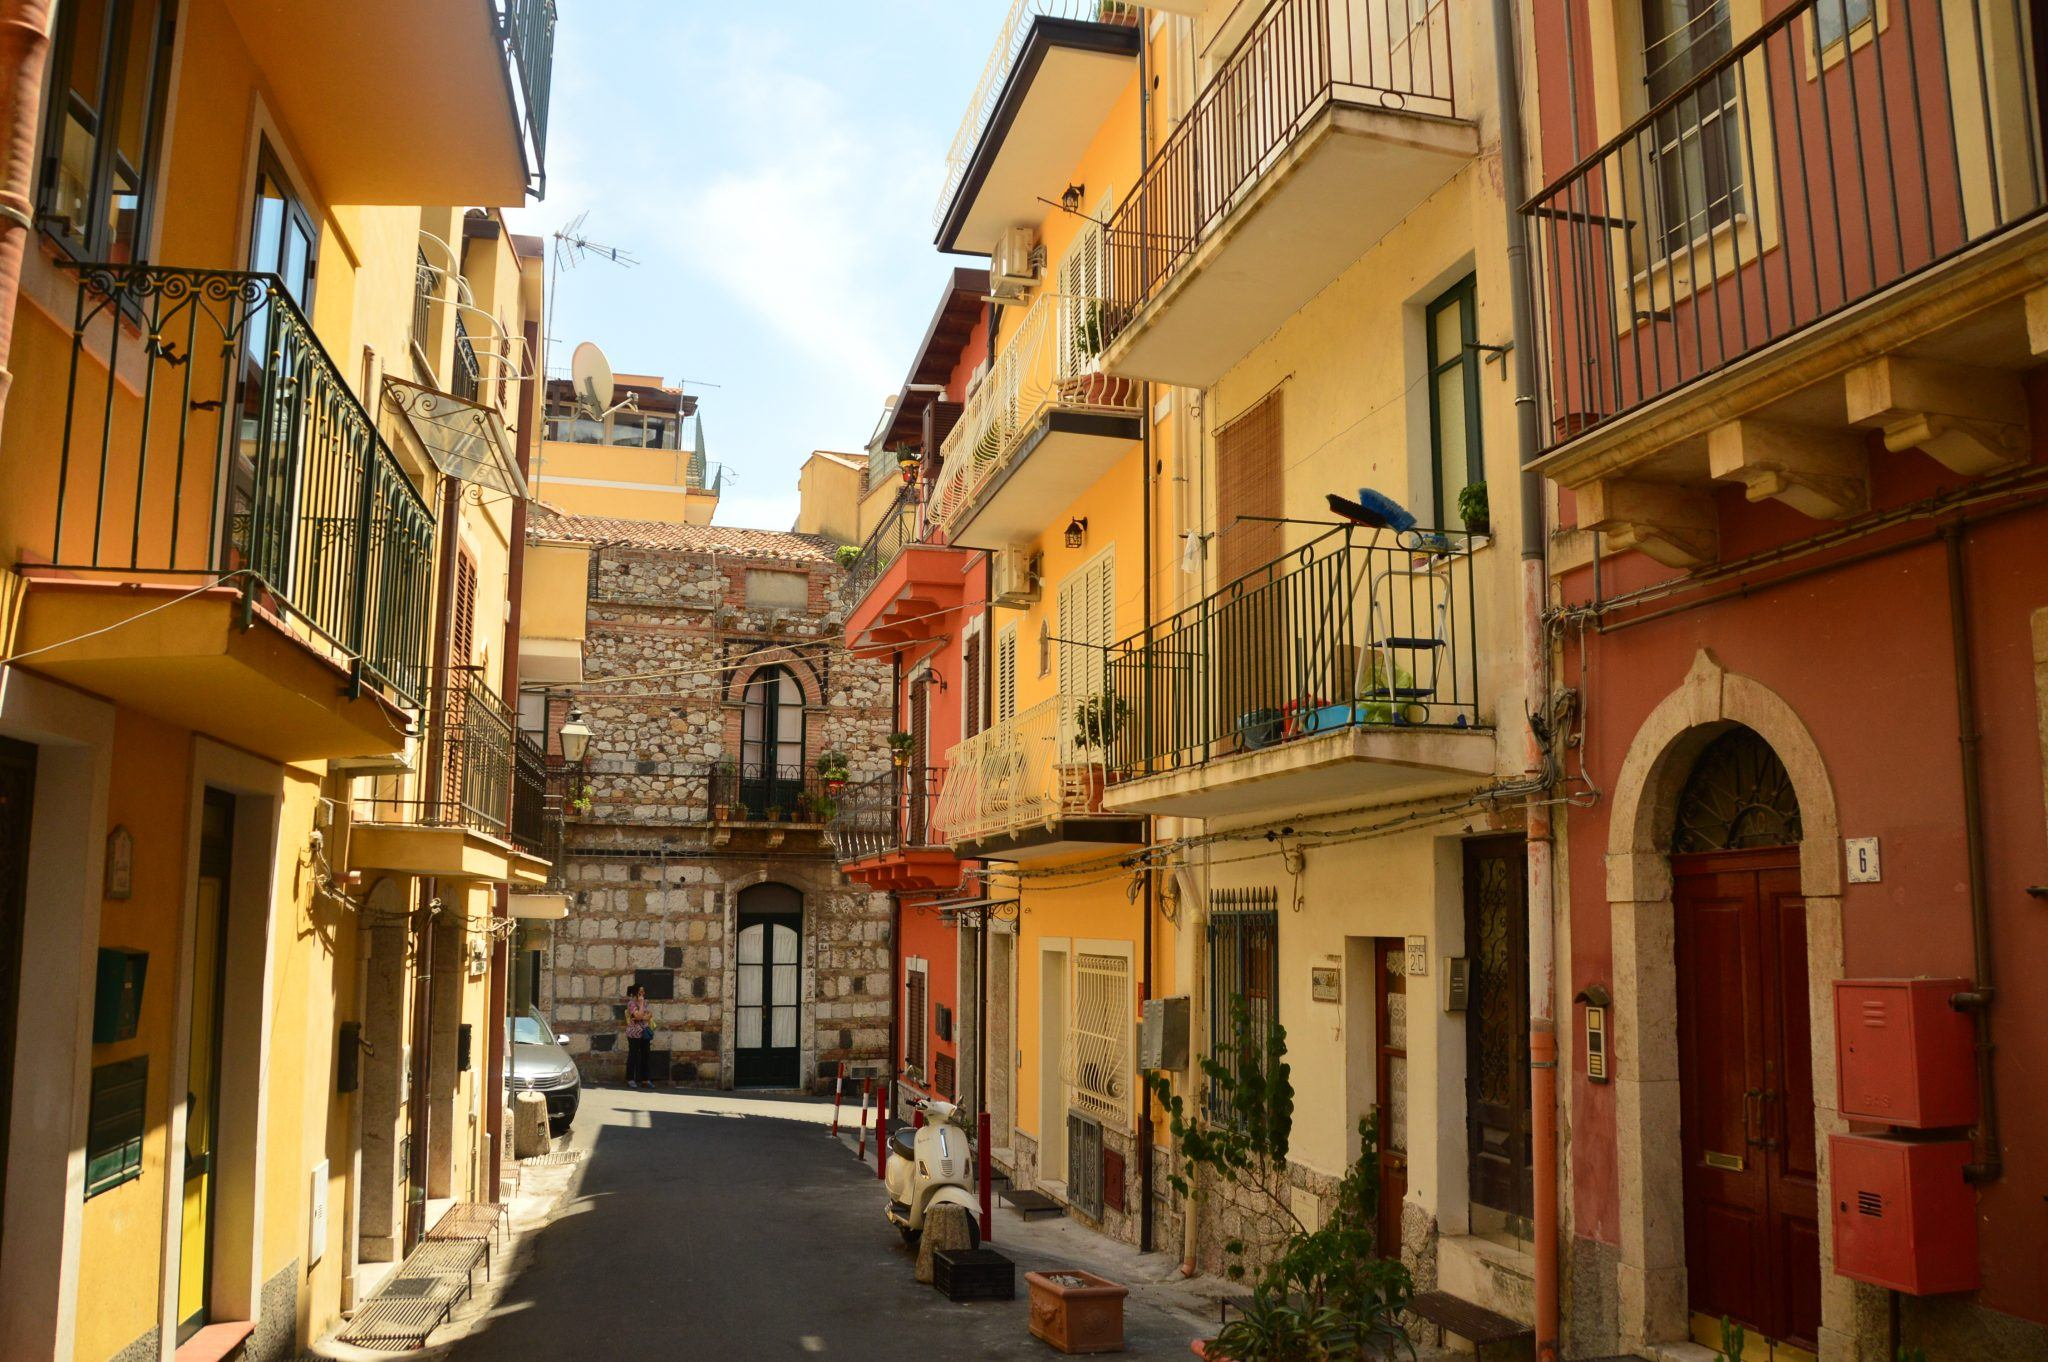 taormina back street with yellow and orange houses